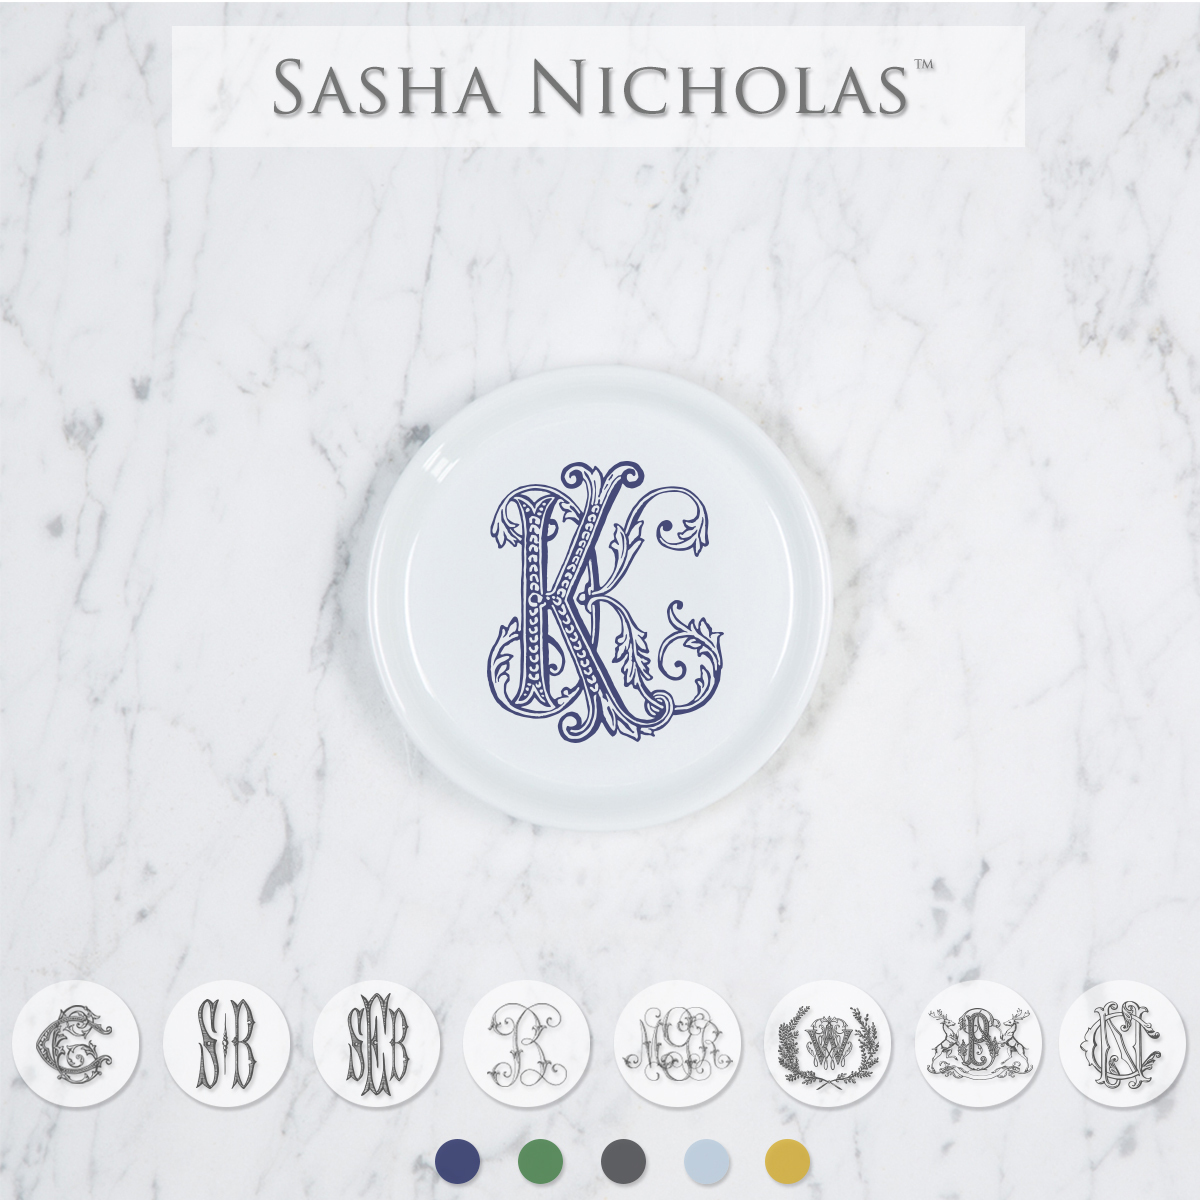 A beautiful addition to adorn your tablescapes with when entertaining and to your dinnerware collection. They make the perfect small gift for your wedding registry. Choose from their signature font styles or use a custom monogram or crest of your choice. | Sasha Nicholas's white porcelain coasters